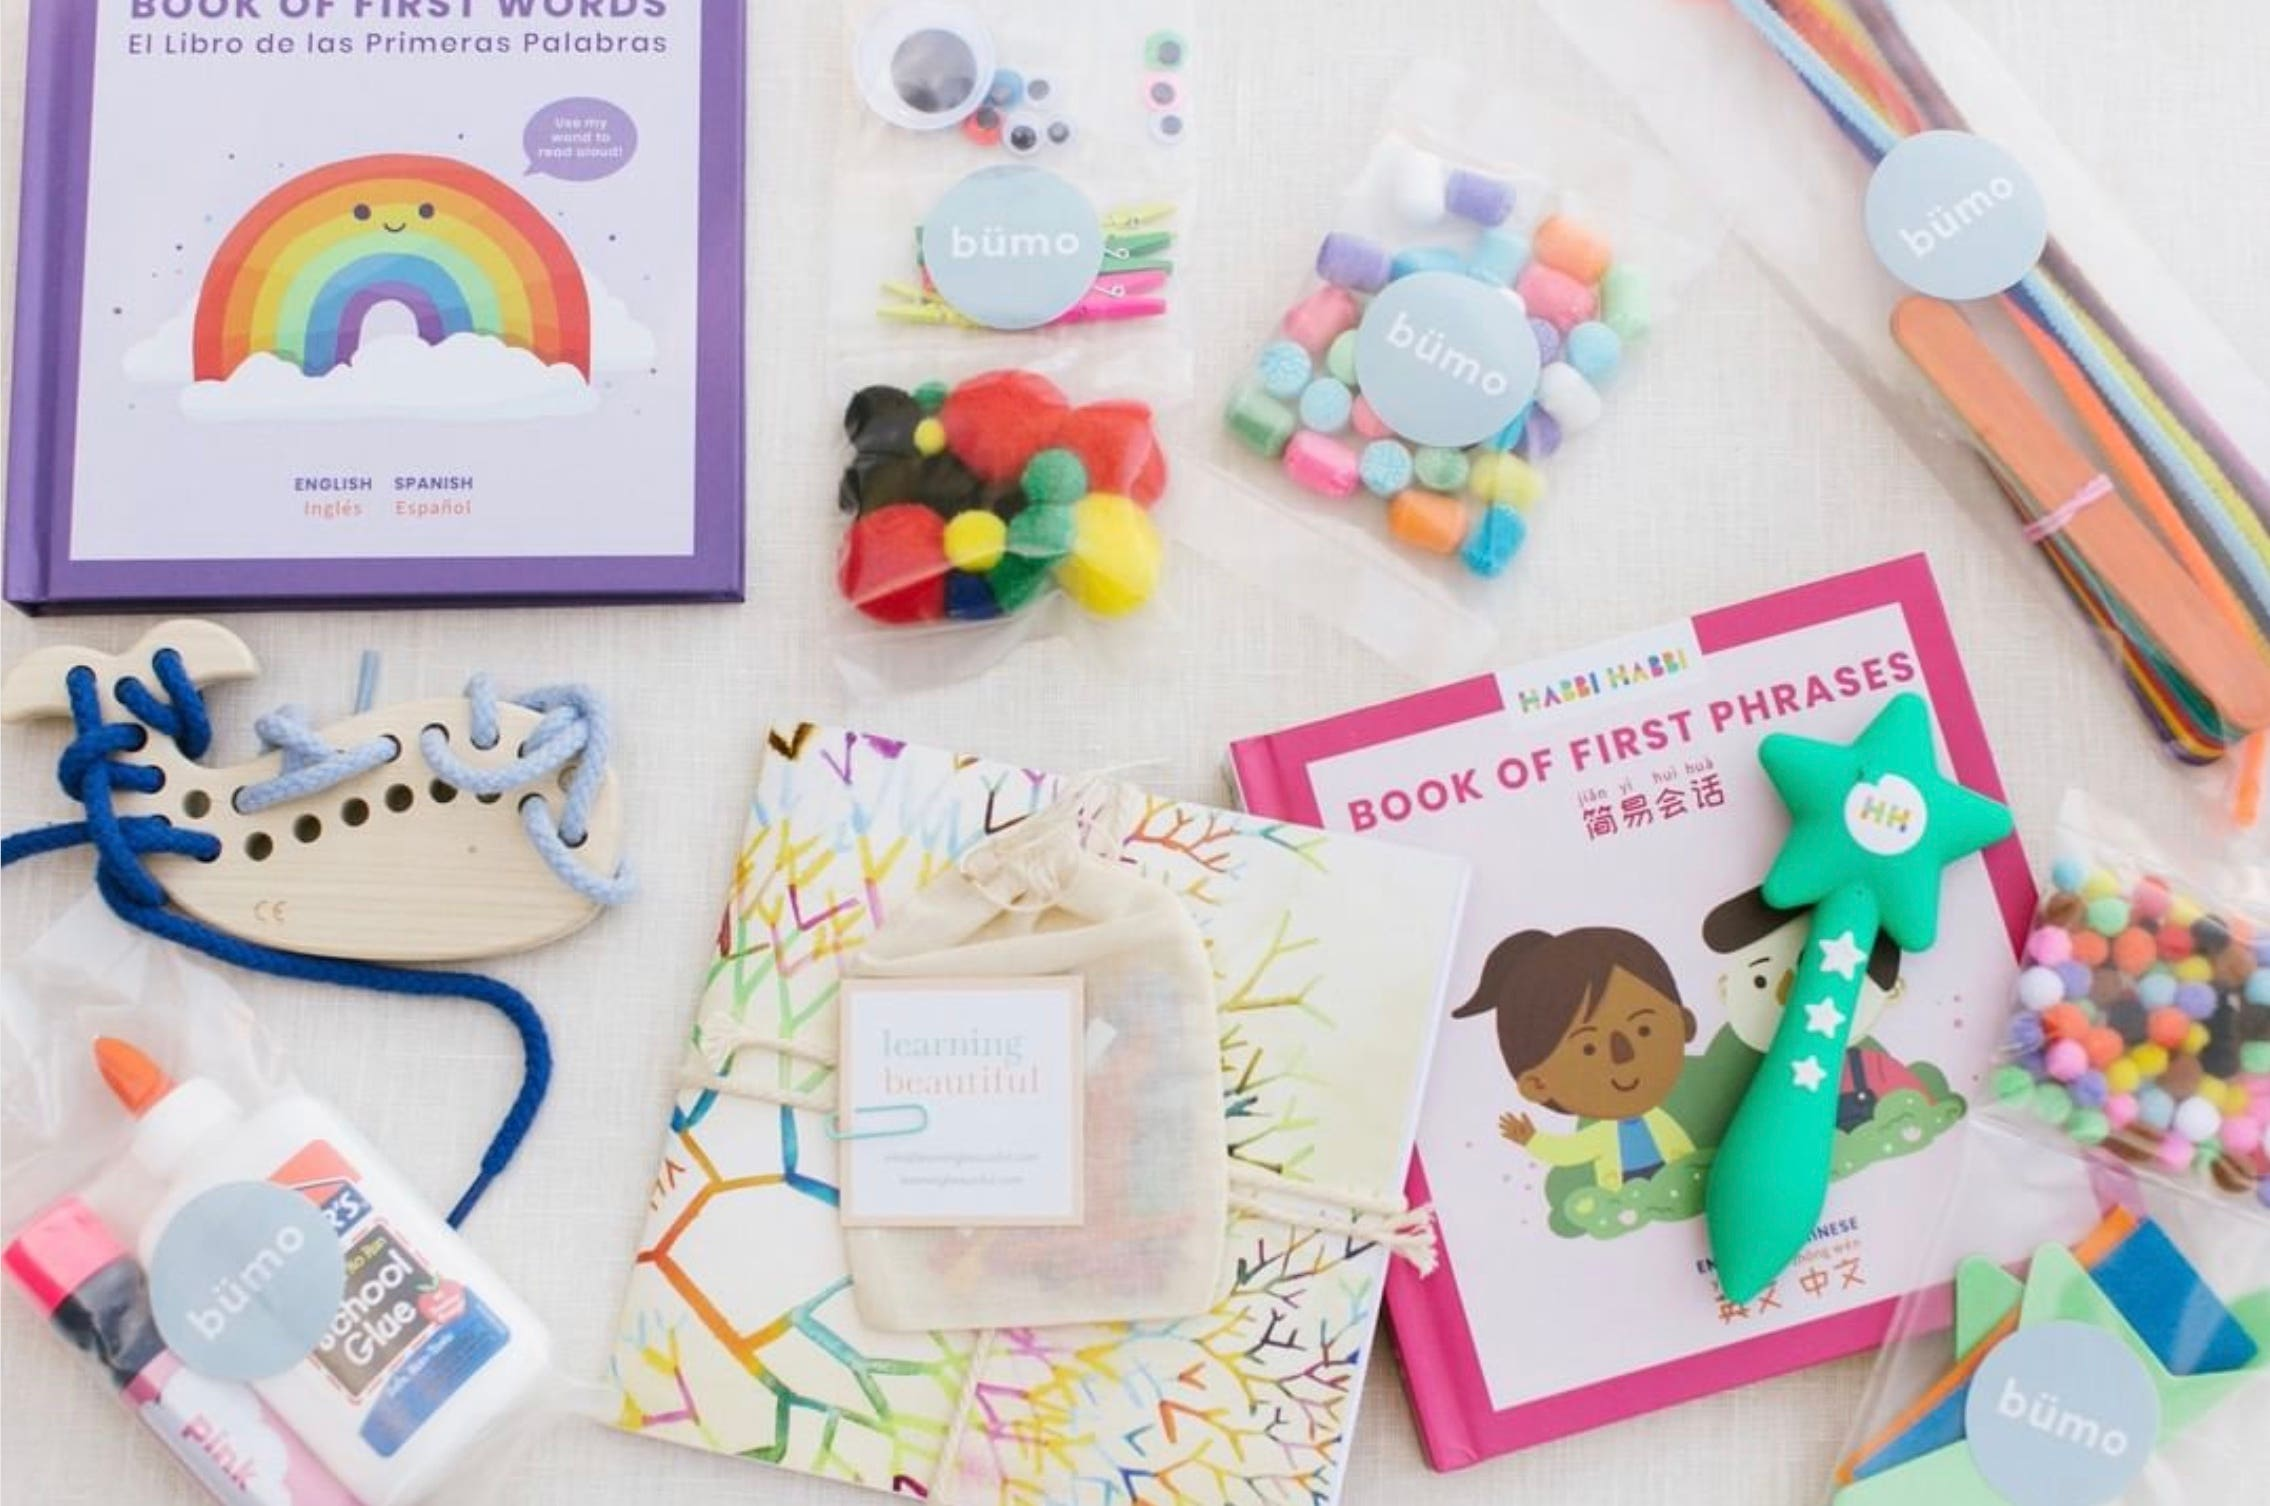 Contents of bumobox for bumo Virtual School including Favor Maple Whale Lacing Toy